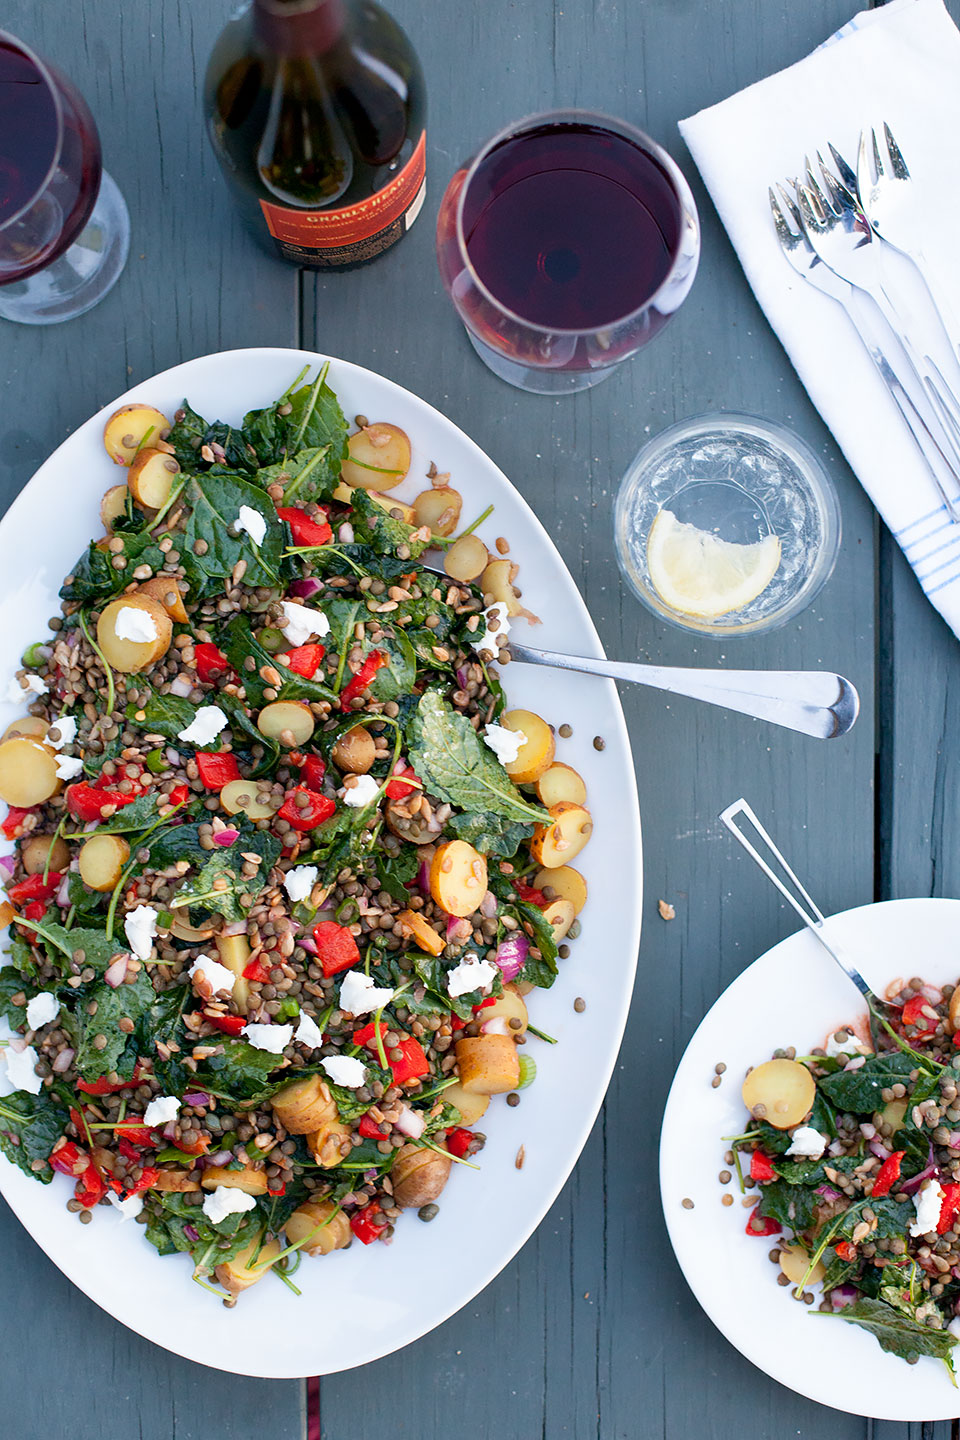 Lentil Potato Salad with Red Peppers and Smoky Paprika Dressing | Gluten-free with a vegan option. | Loveleaf Co.